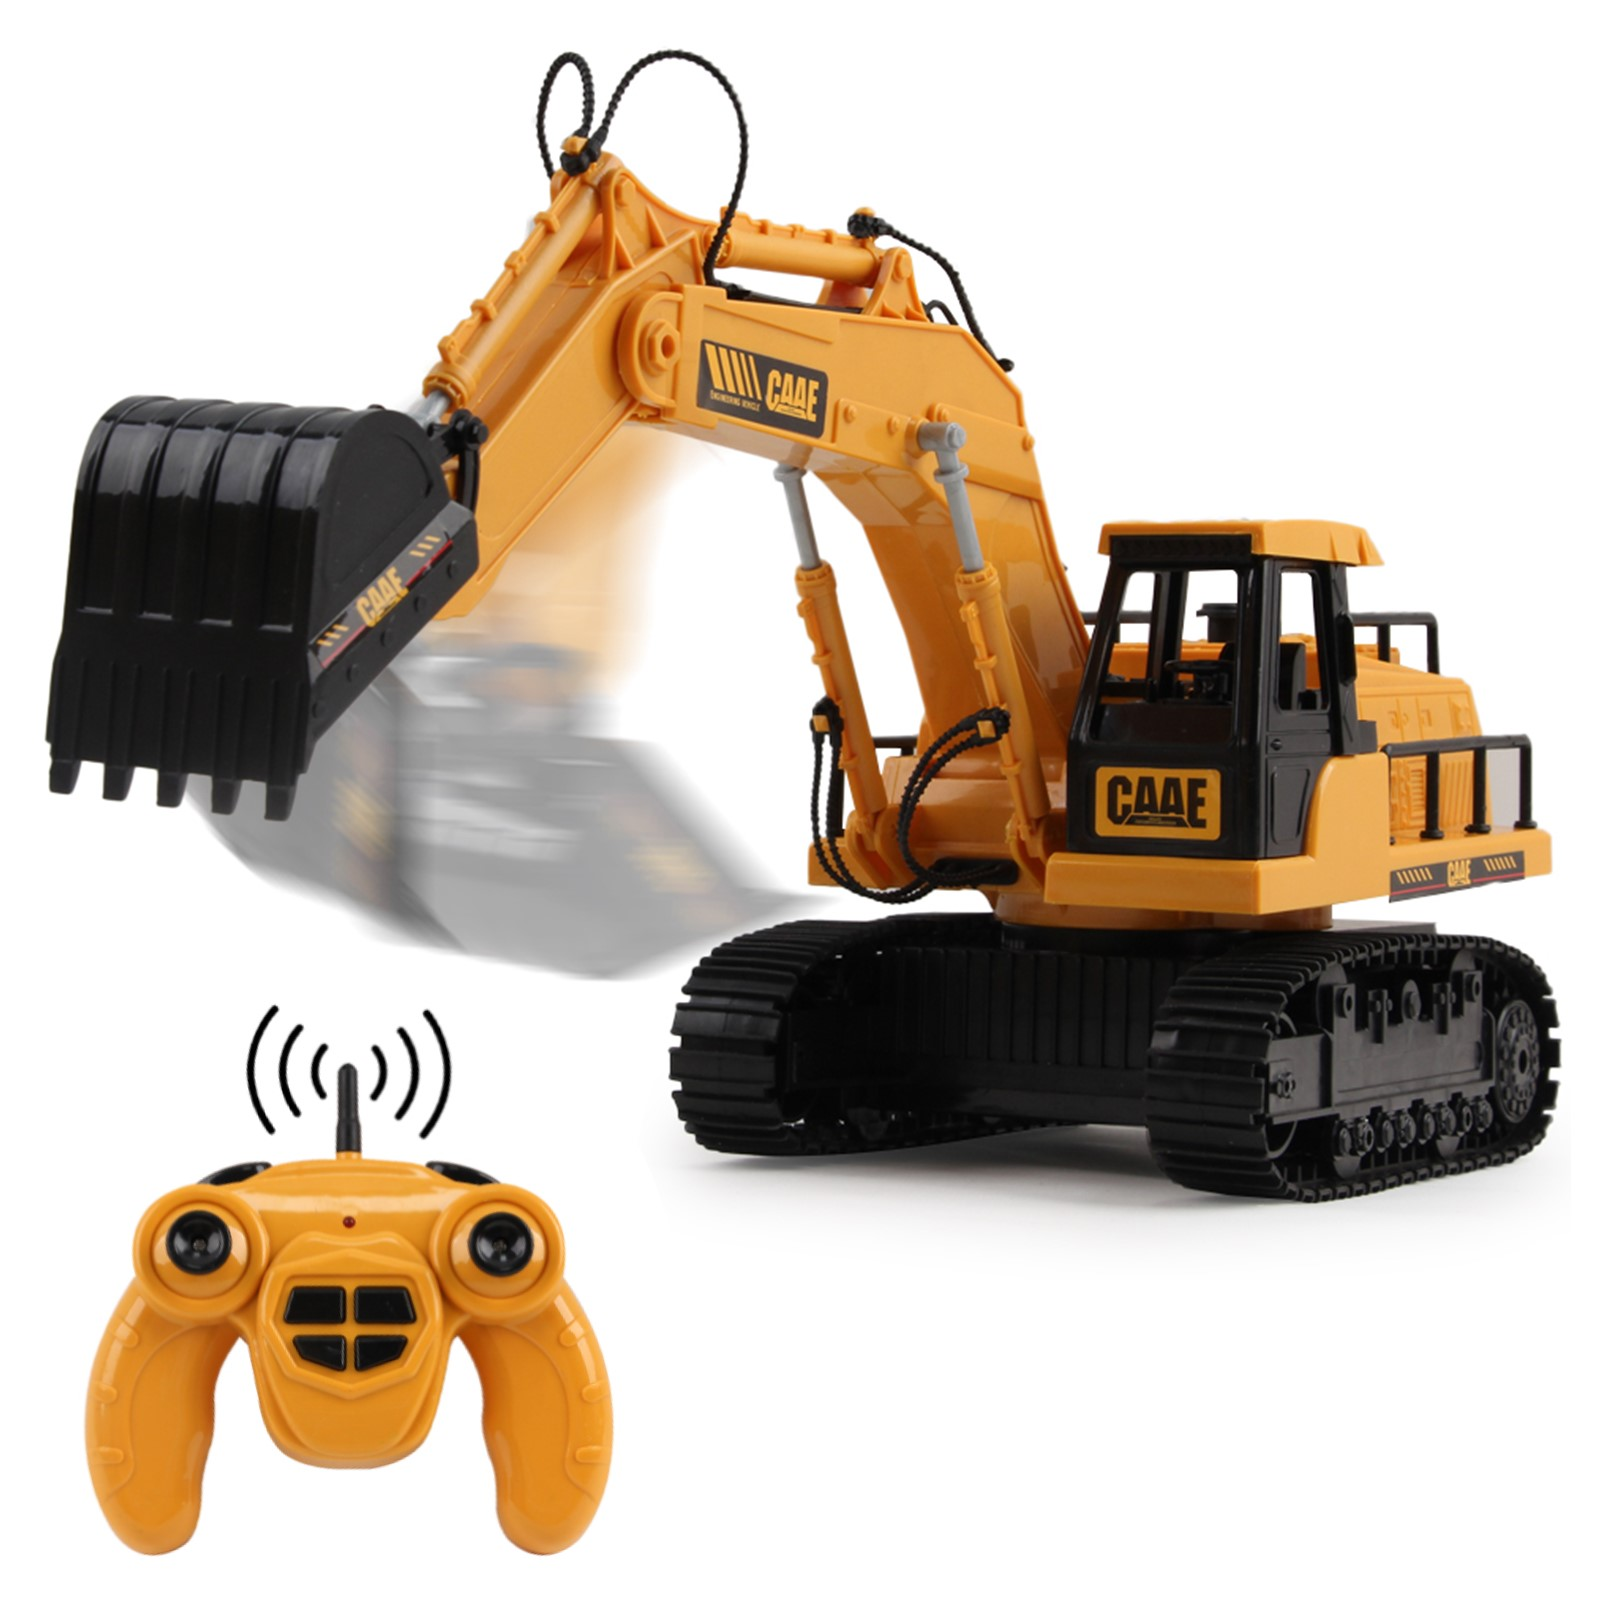 Full Functional RC Excavator 1:22 Scale 2.4Ghz Construction Toy Tractor Truck Electric Remote Control Radio Digger Car Ready To Run RTR Perfect Vehicle Gift For Kids